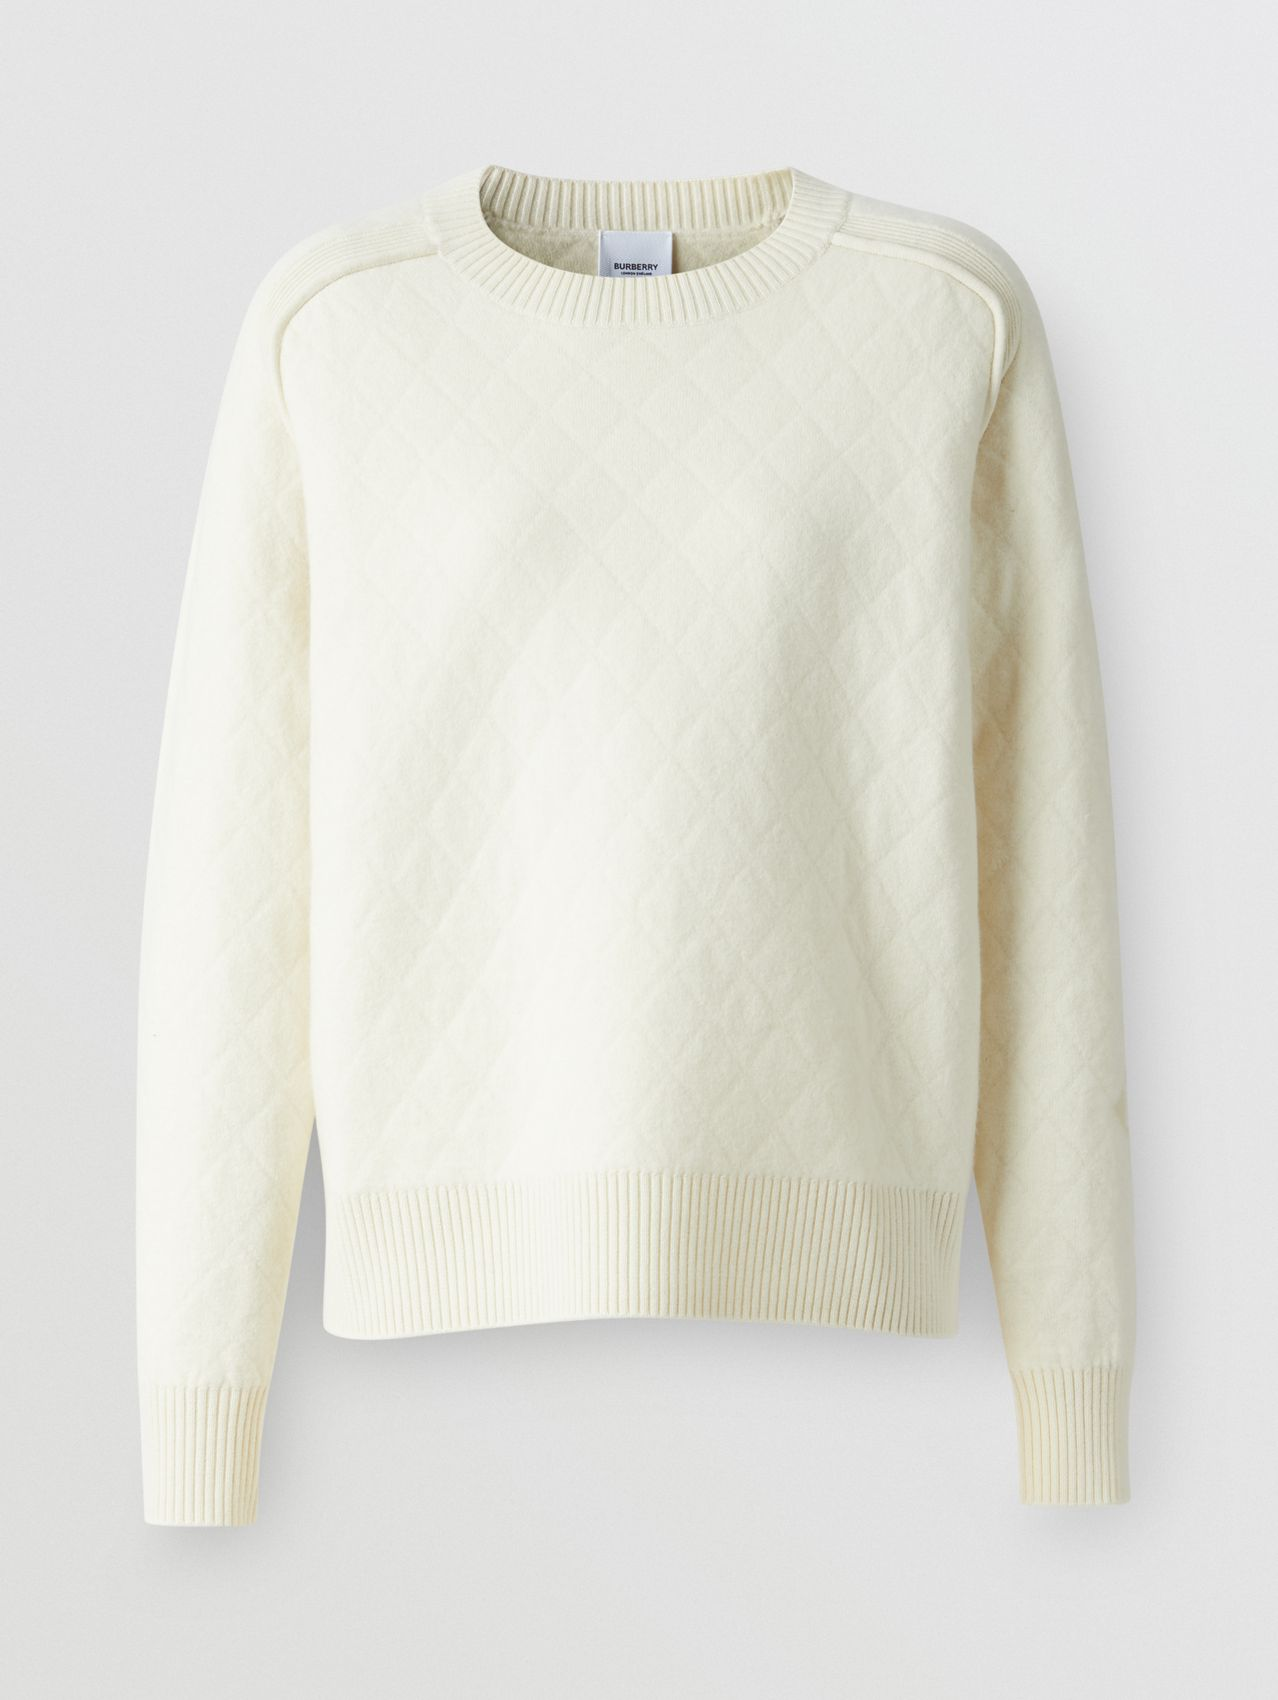 Diamond Knit Wool Sweater in Cream